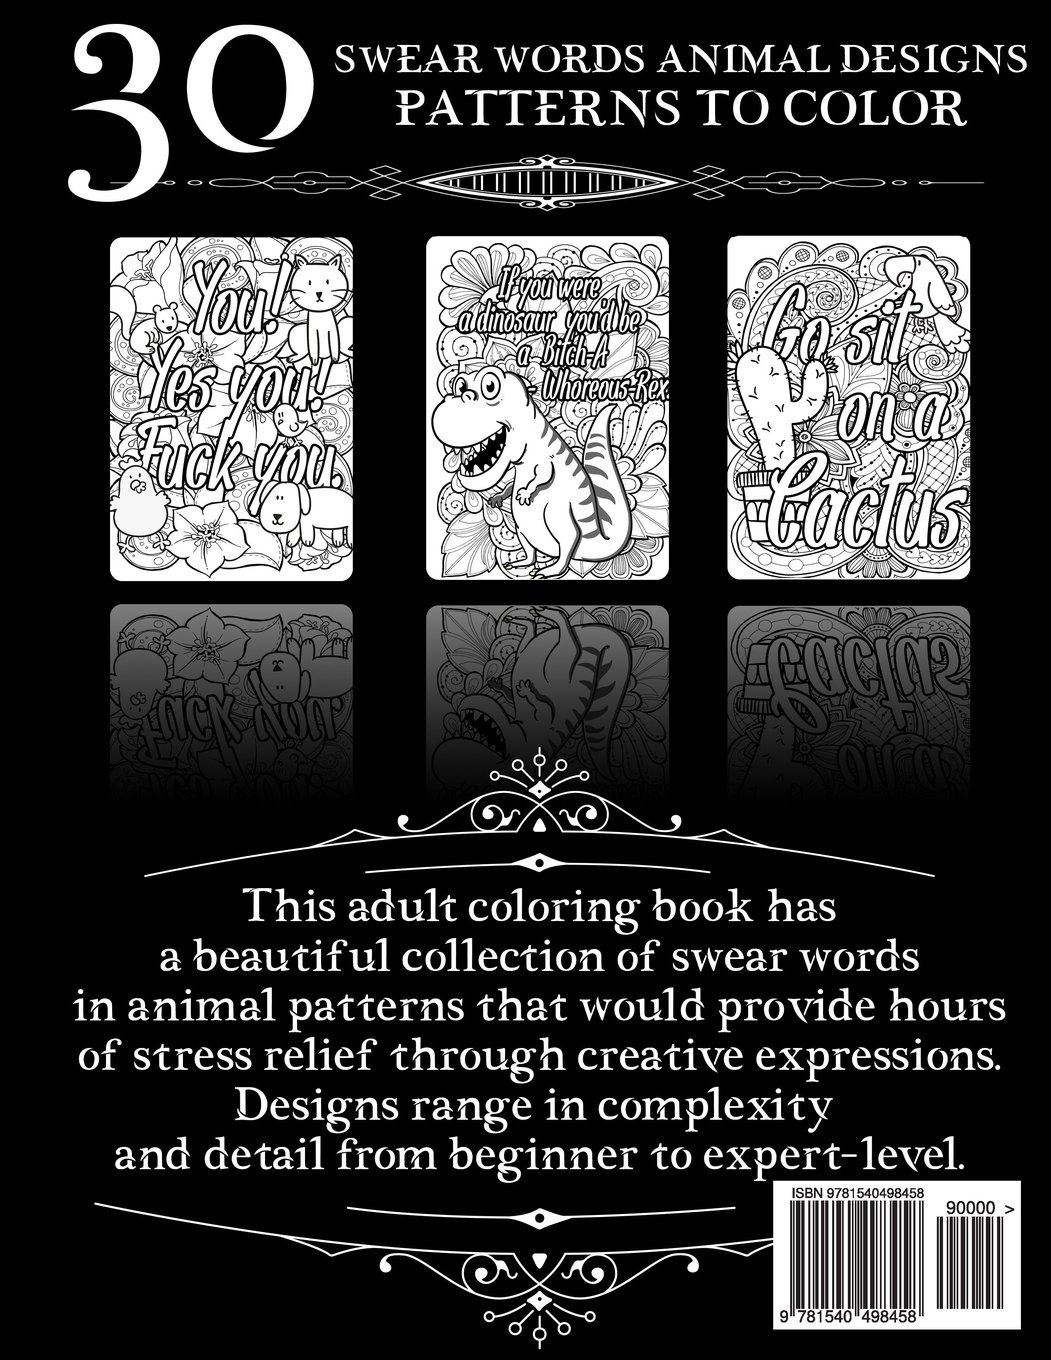 Amazon Coloring Books For Adults Relaxation Swear Word Animal Designs Sweary Book Patterns Fun